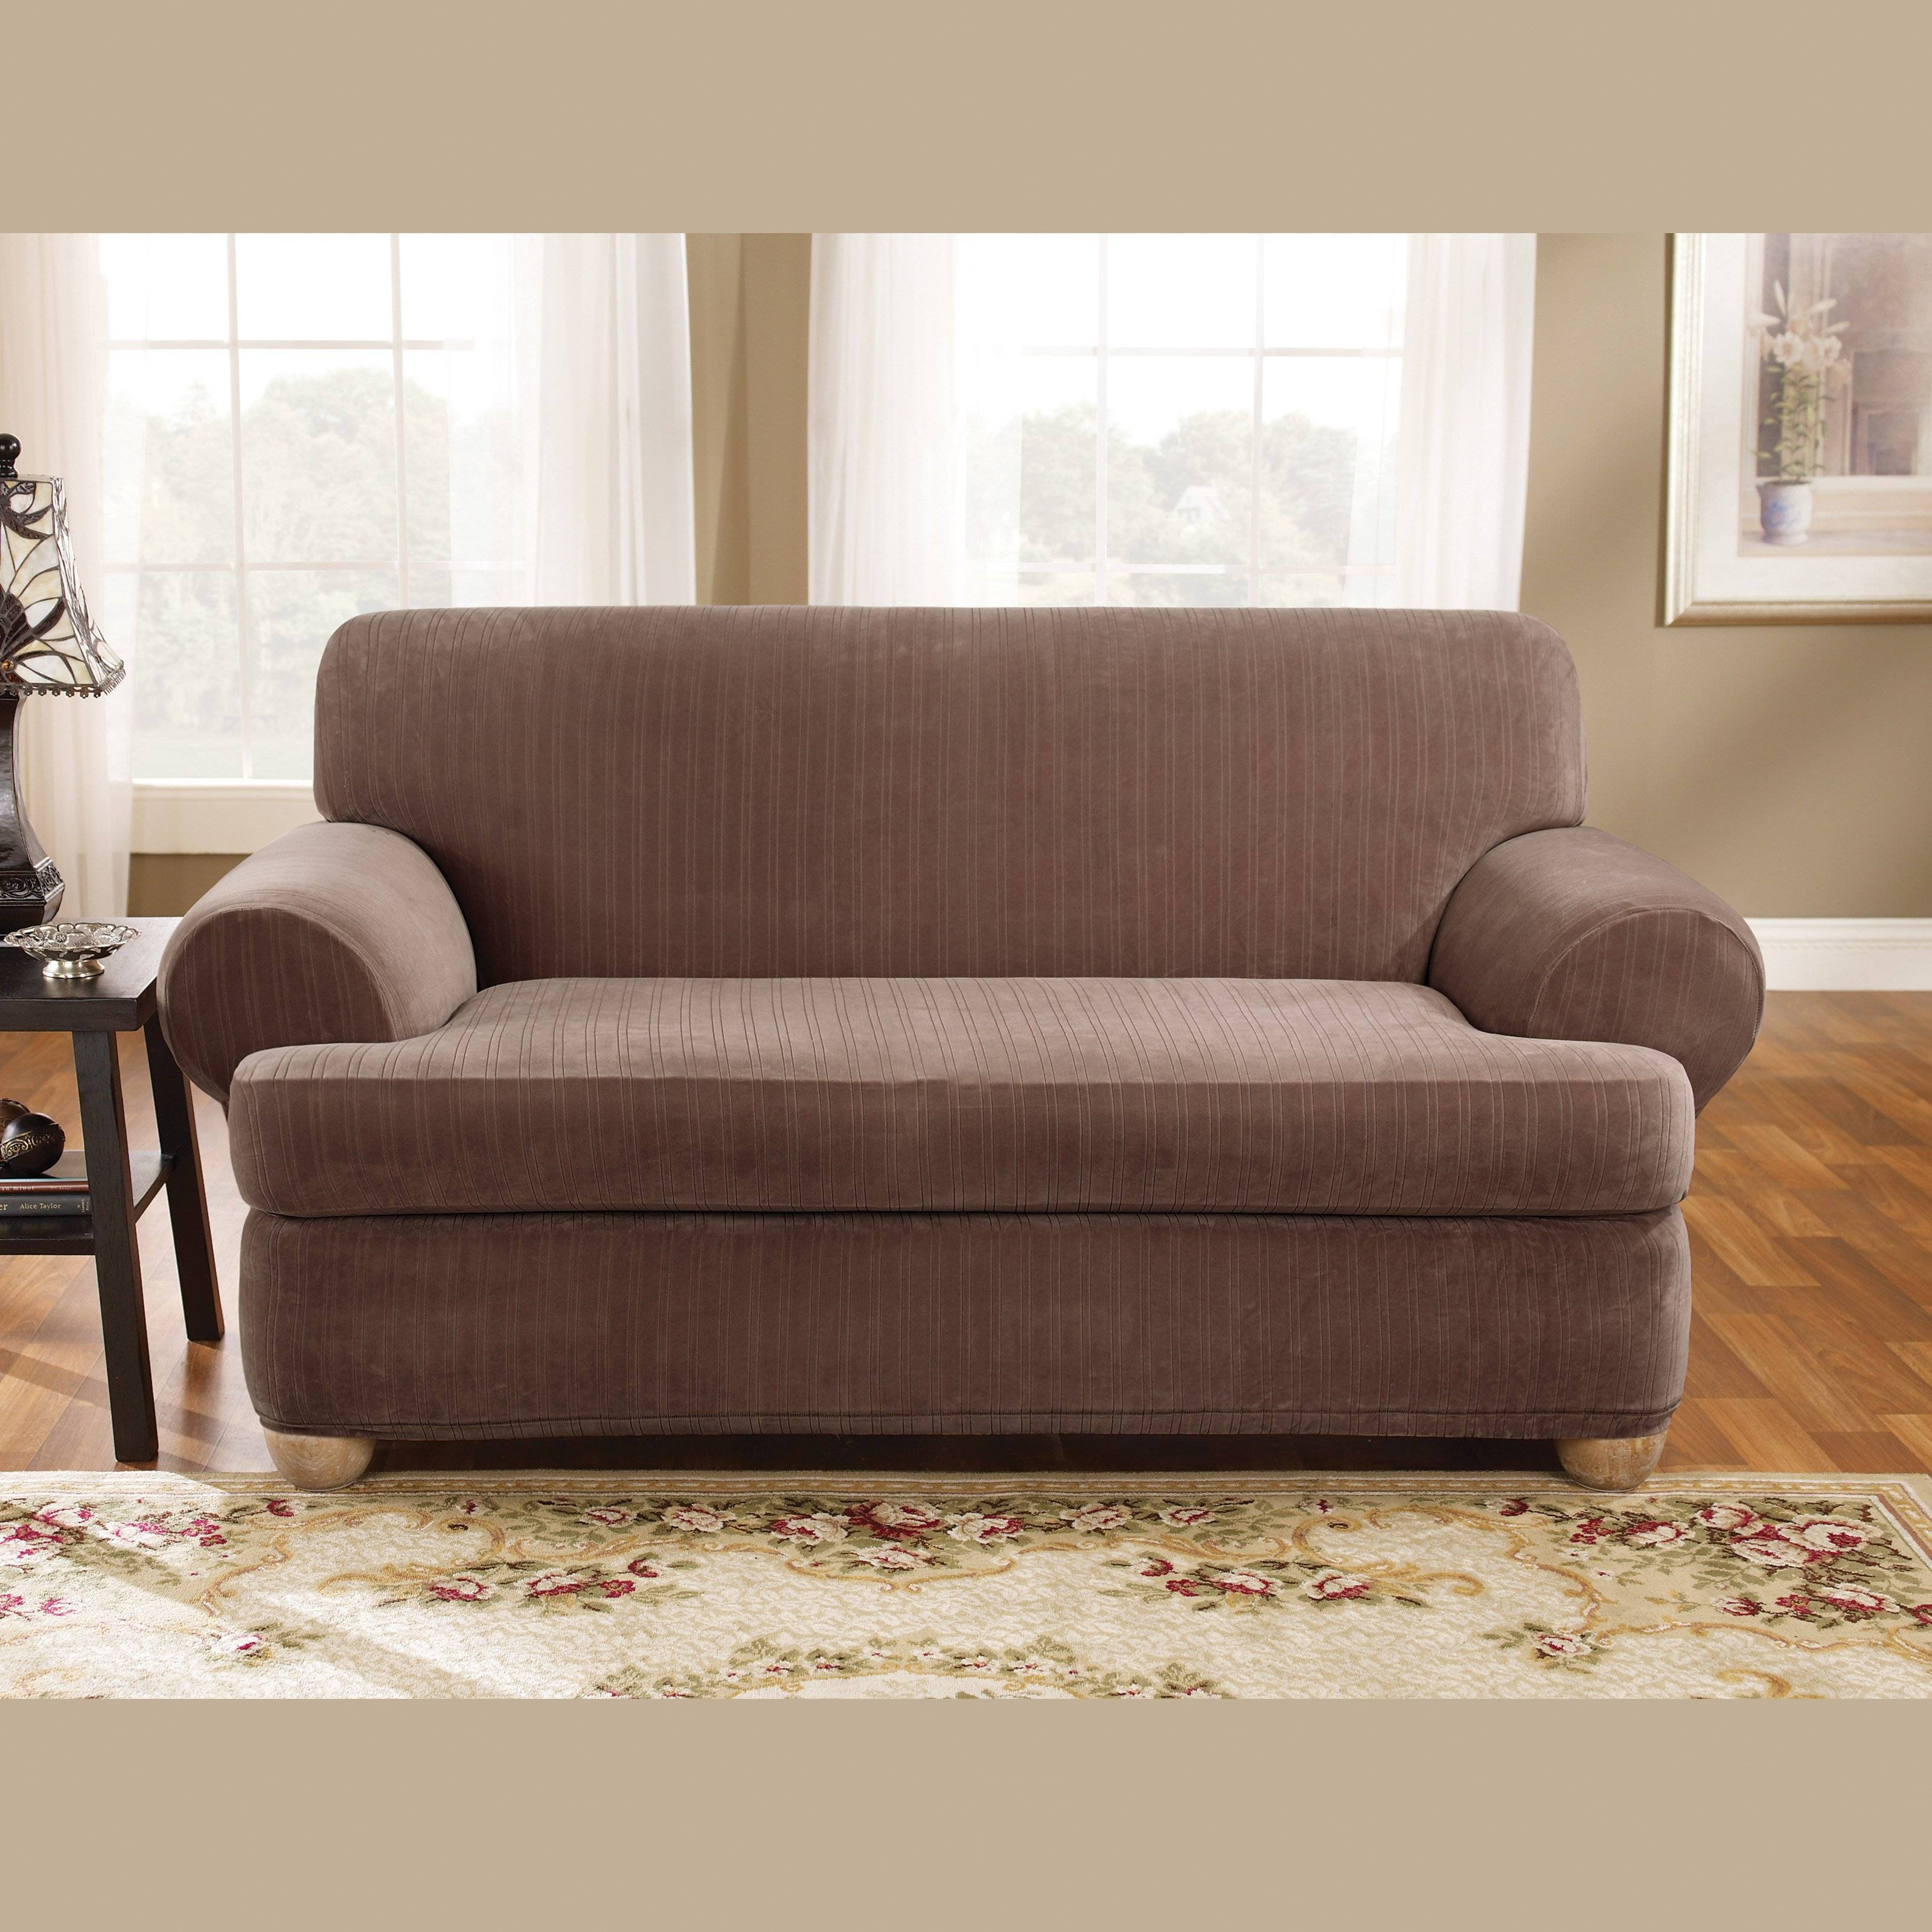 T Cushion Sofa Slipcover Stretch | Centerfieldbar for Black Sofa Slipcovers (Image 15 of 15)